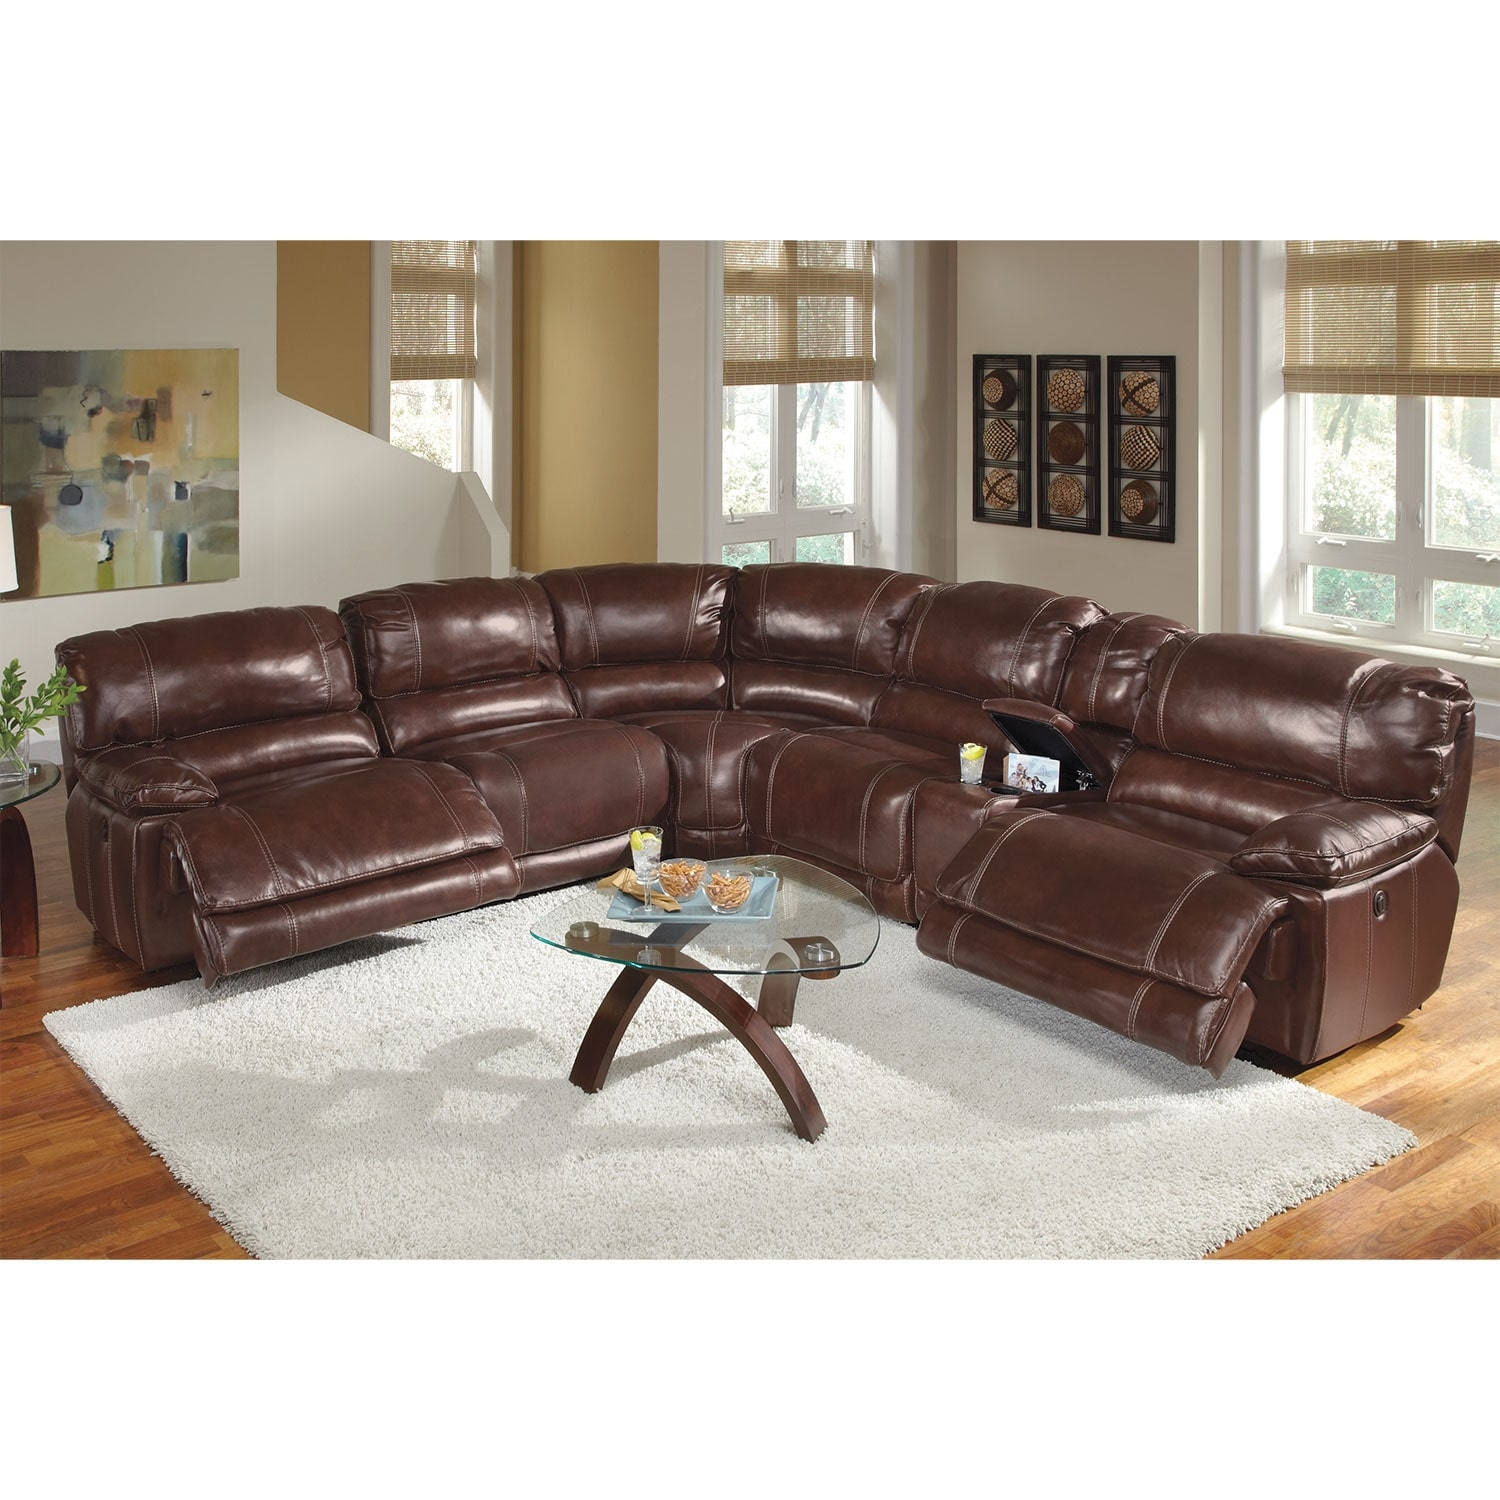 St Malo 6 Piece Power Reclining Sectional with Modular Console